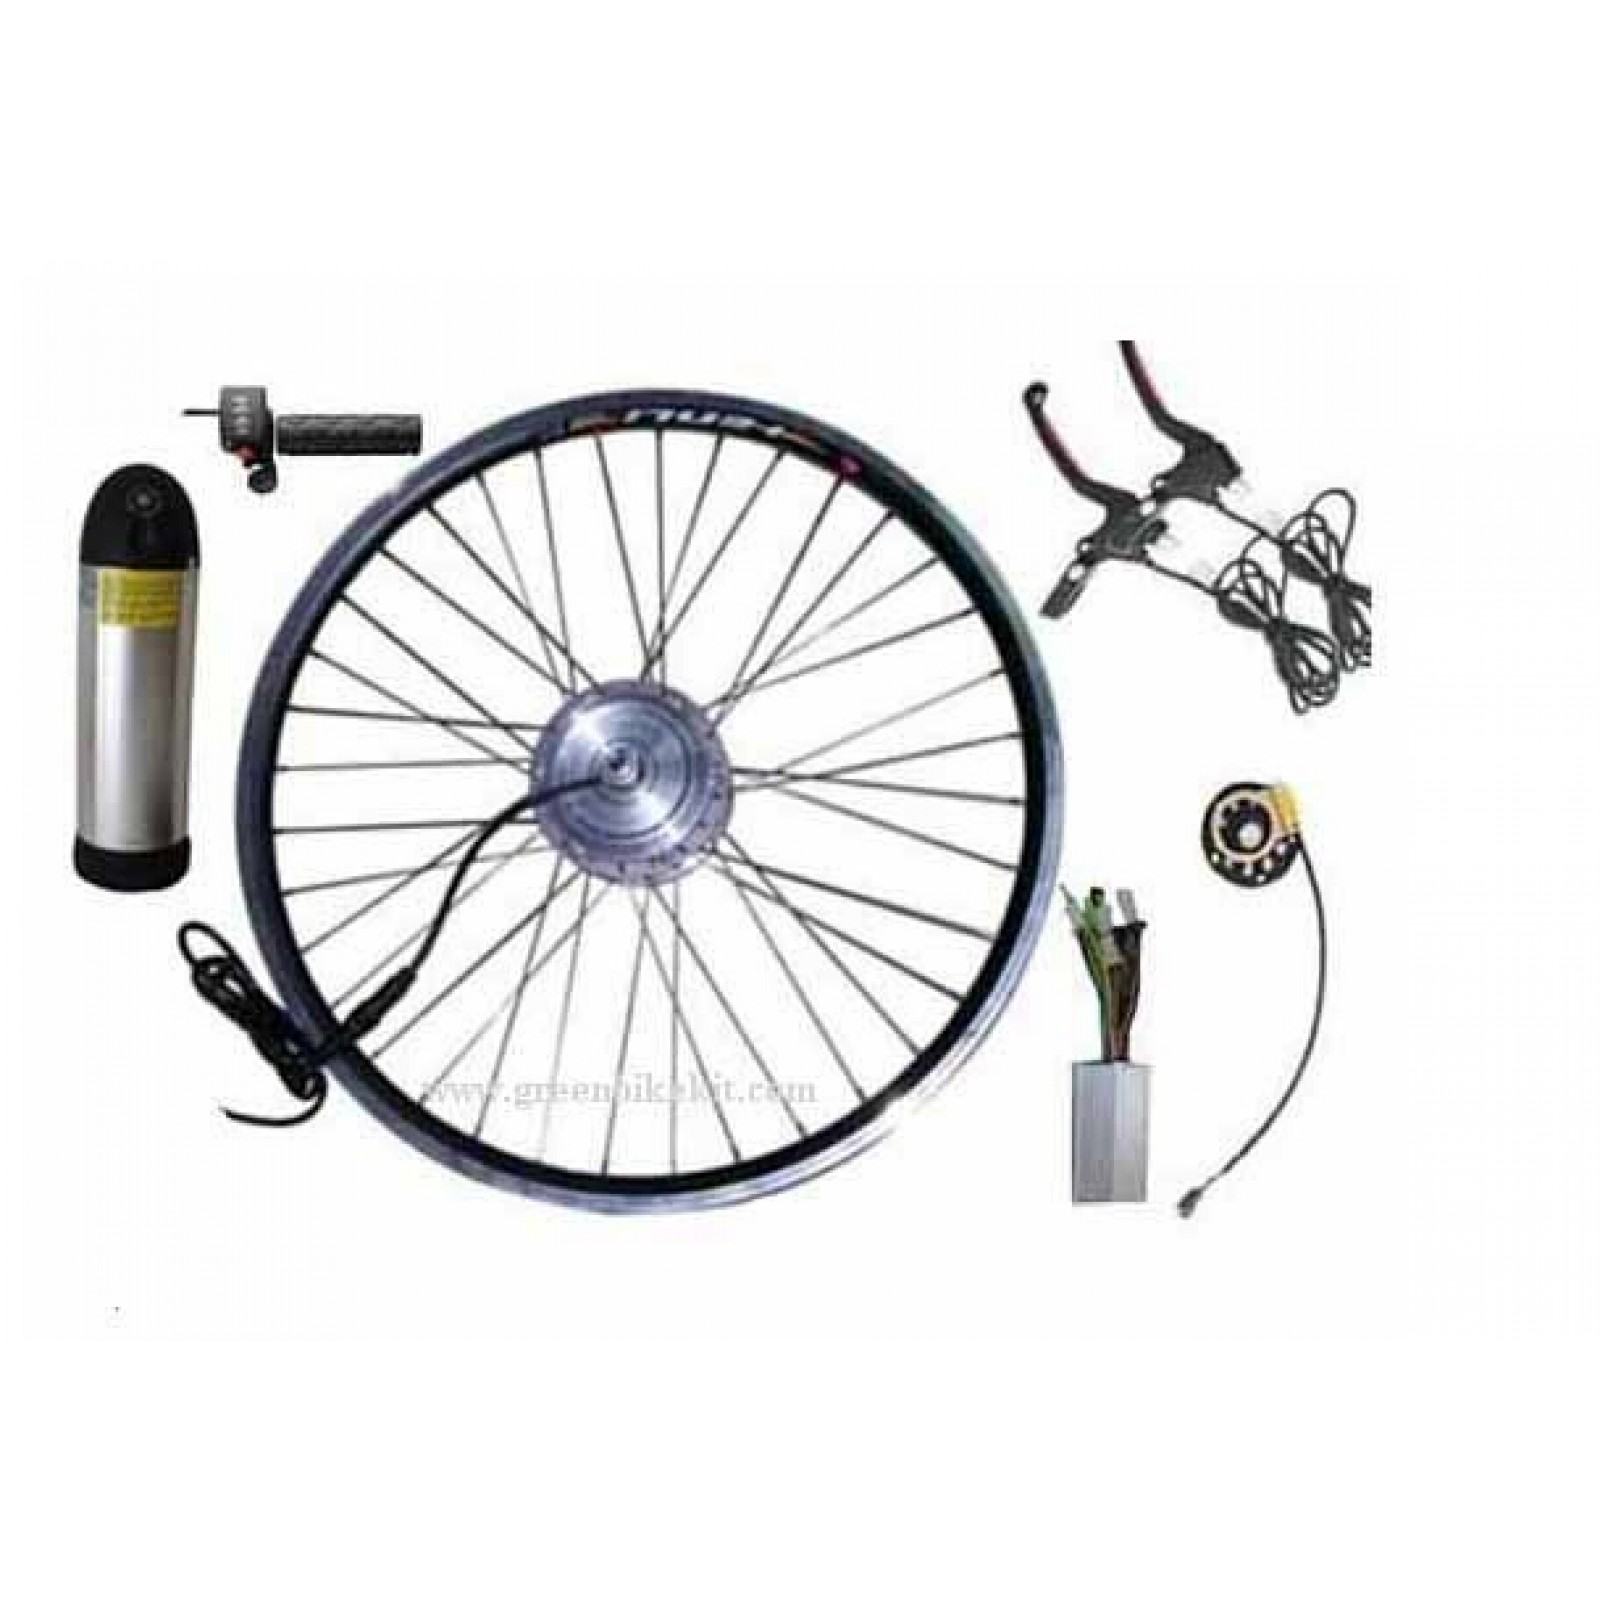 36v 250w Cassette Freewheel Cst Engine Kit With Bottle